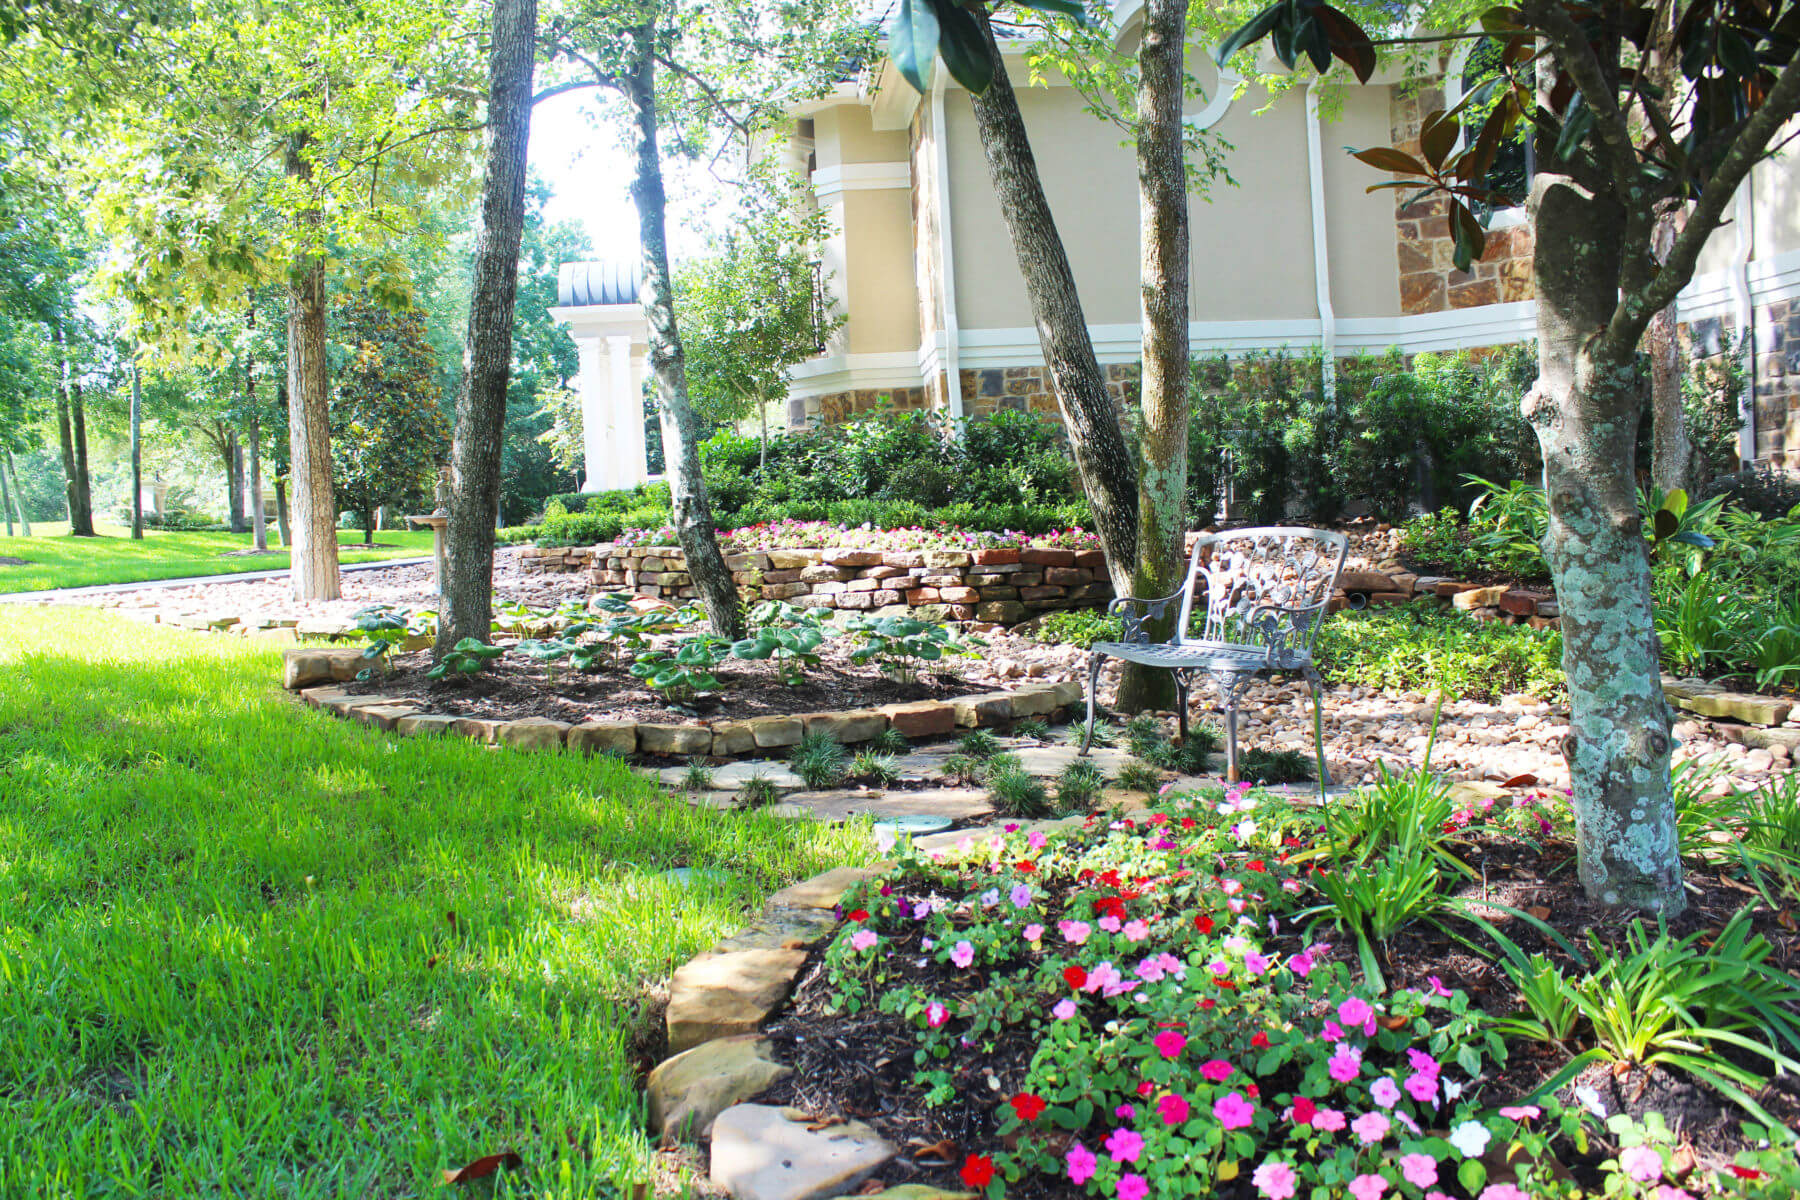 Summer Landscaping Tips with Joby Bonnot - Ranch House ... on ranch house curb appeal landscaping, ranch landscaping ideas, ranch house landscaping designs,